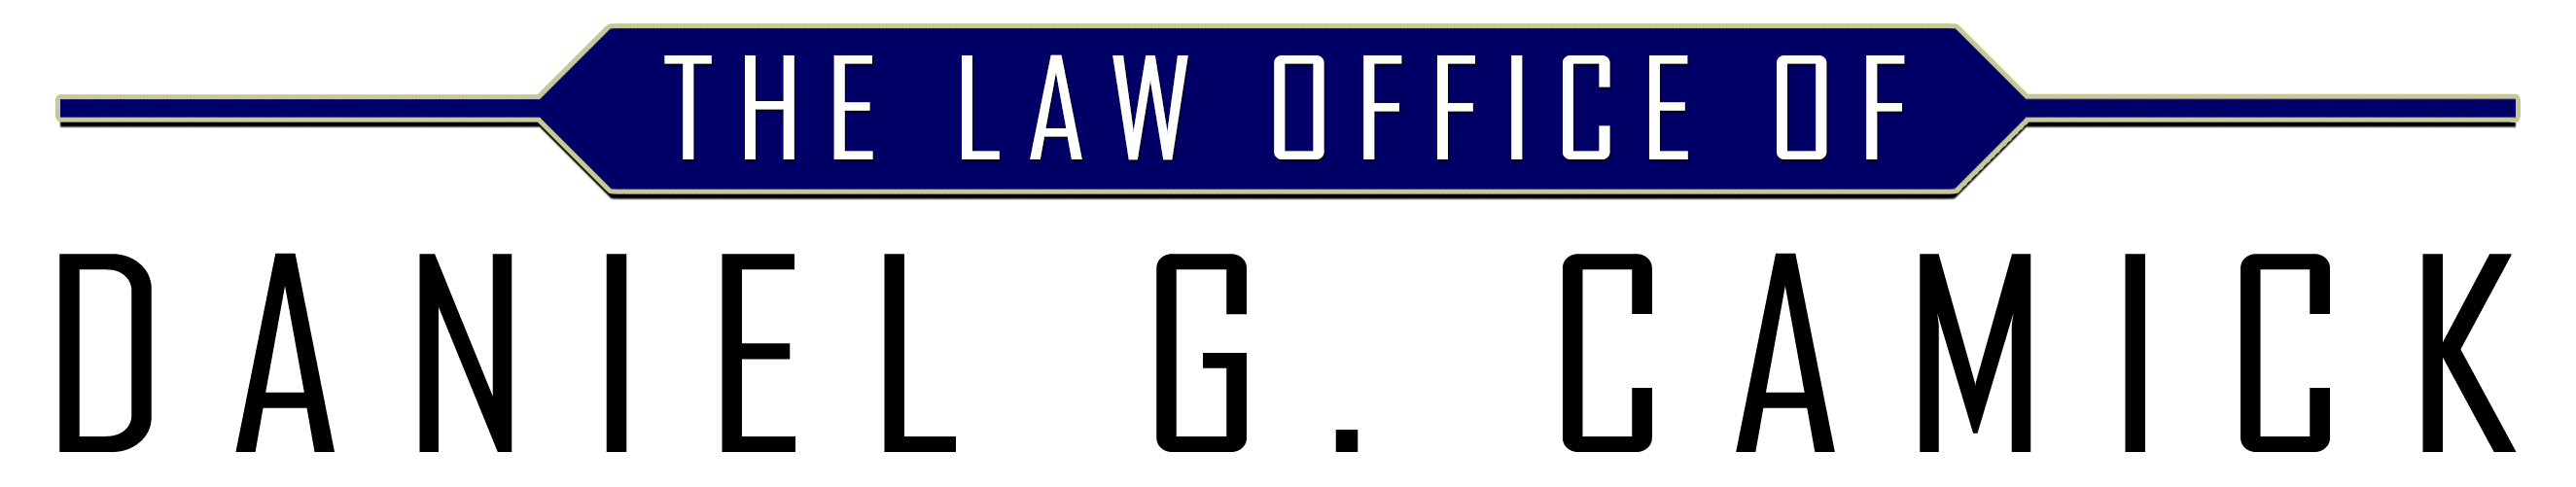 The Law Office of Kristina L Paulter PA